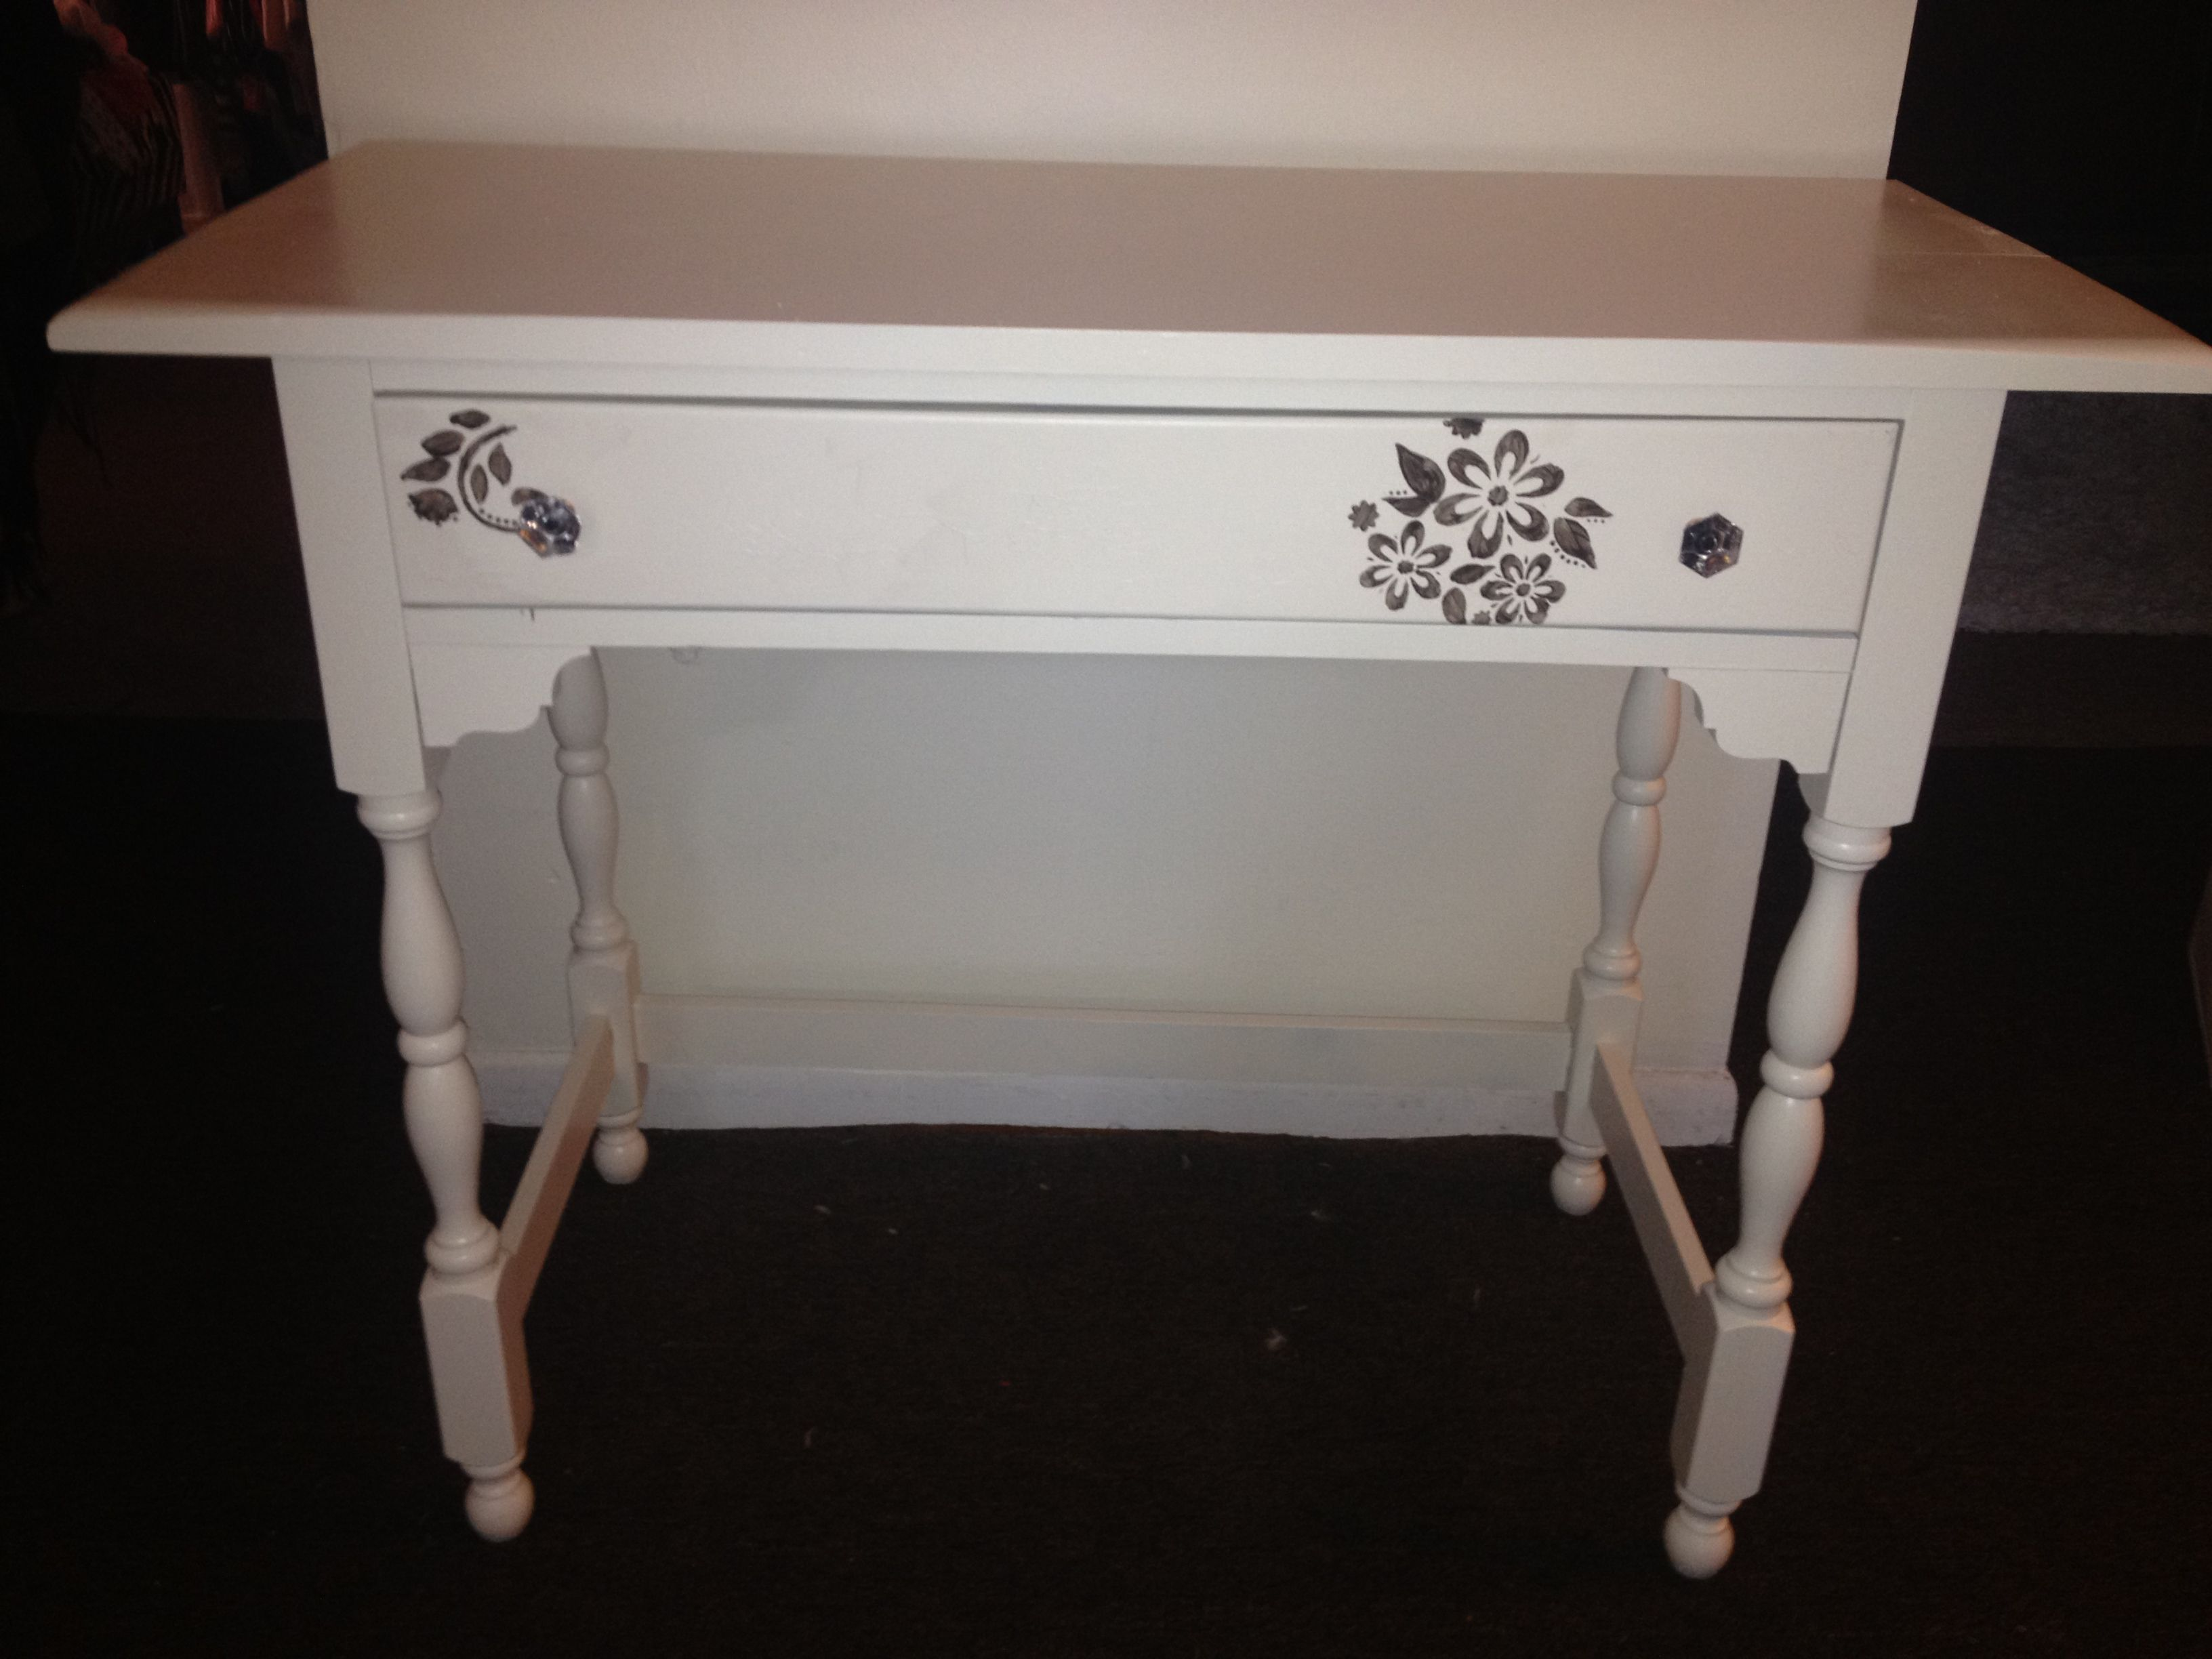 Upcycled furniture | Upcycling | Pinterest